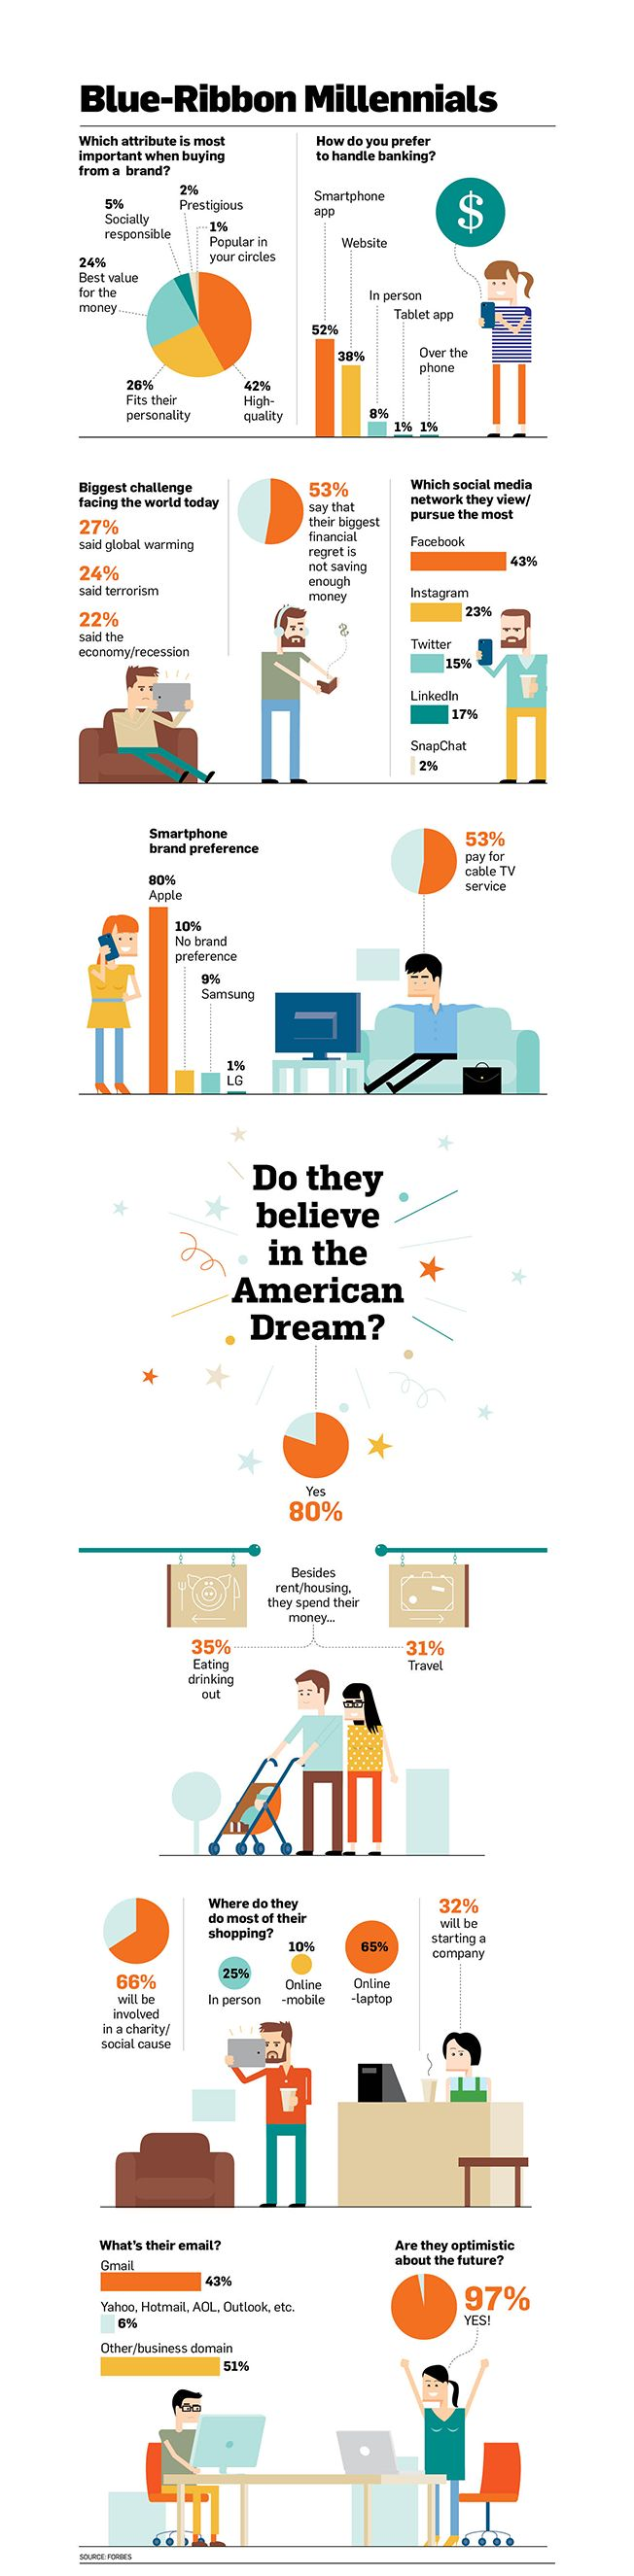 Infographic: How the Best and Brightest Millennials Live, Shop and Dream